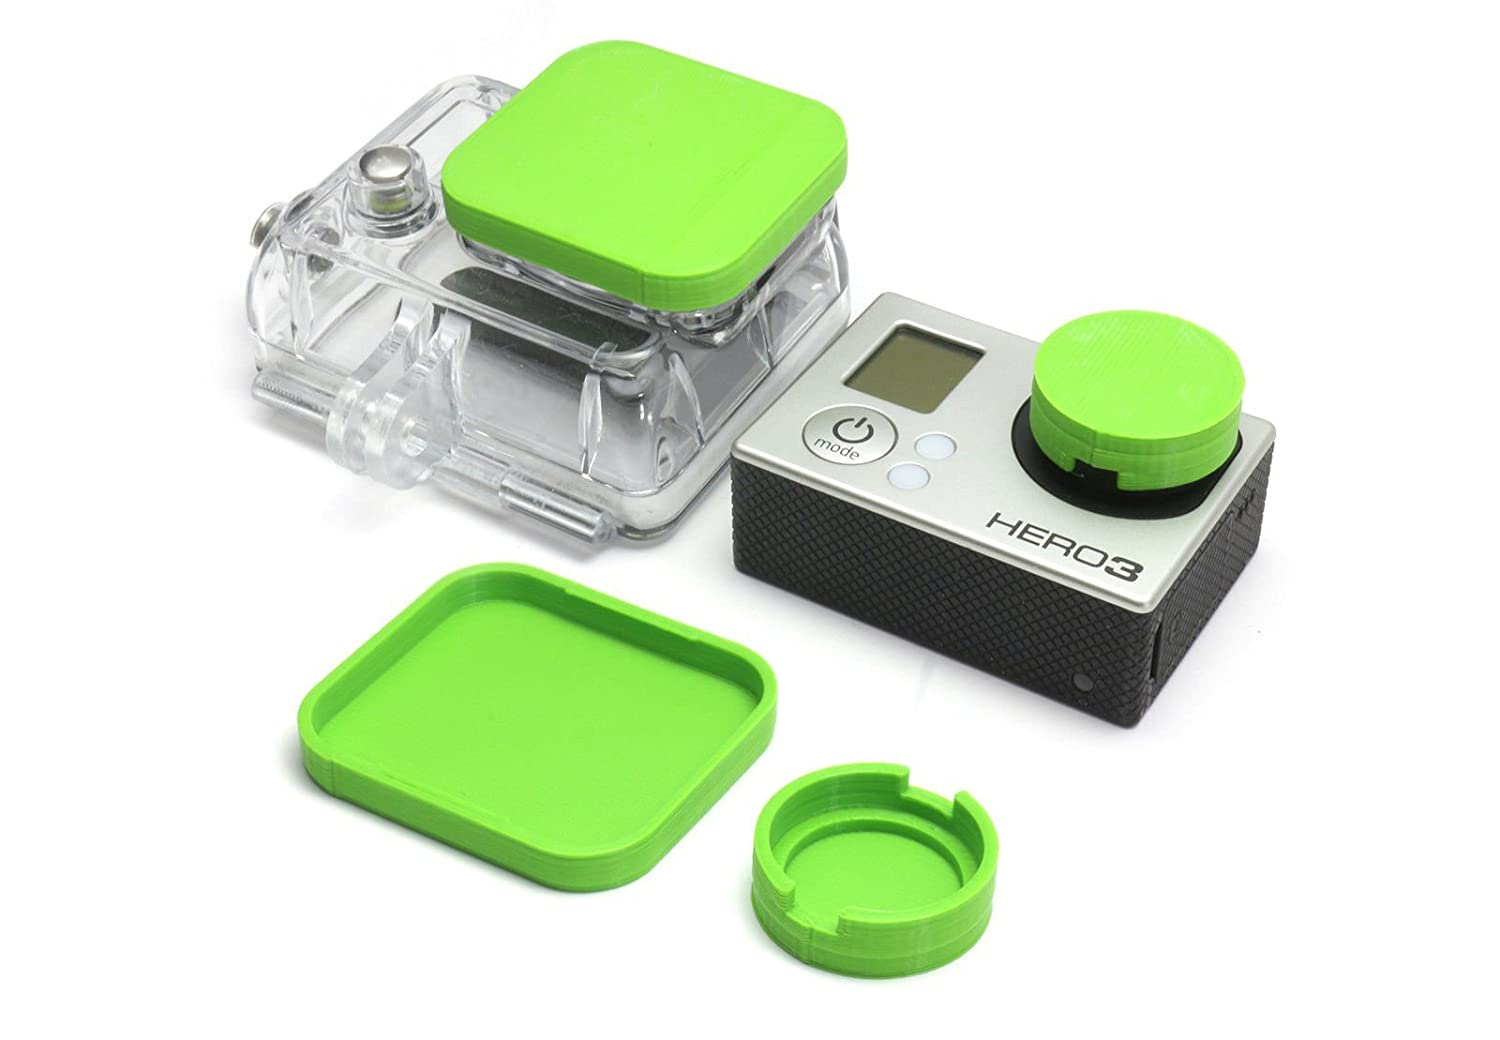 onenetwork.church Lense Protector for GoPro Hero 3 Accessories ...